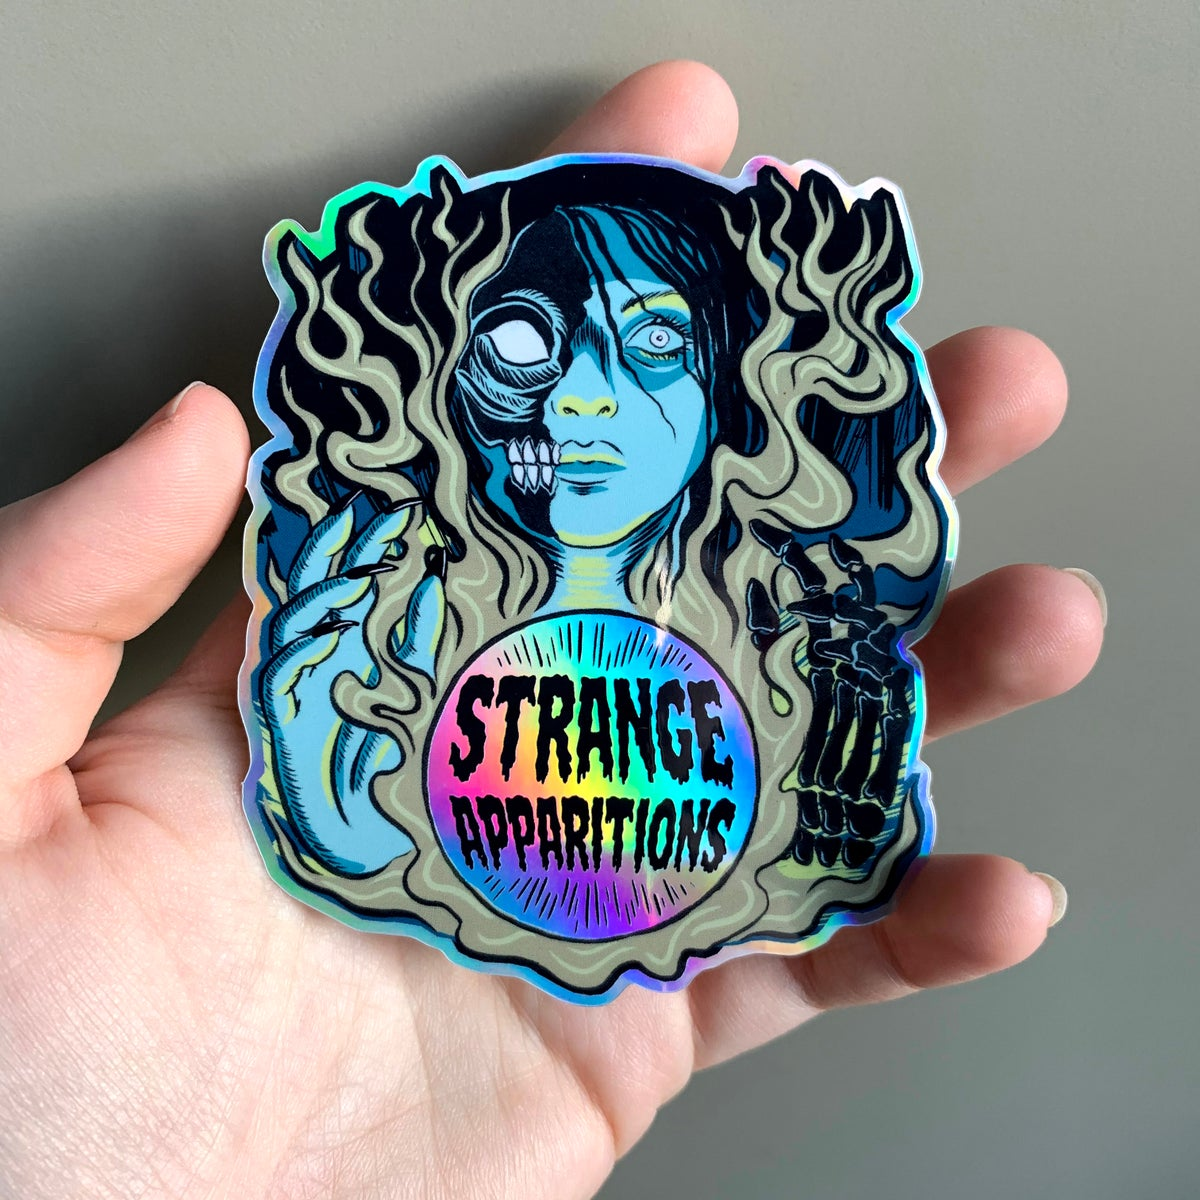 Image of Strange Apparitions Holo Sticker